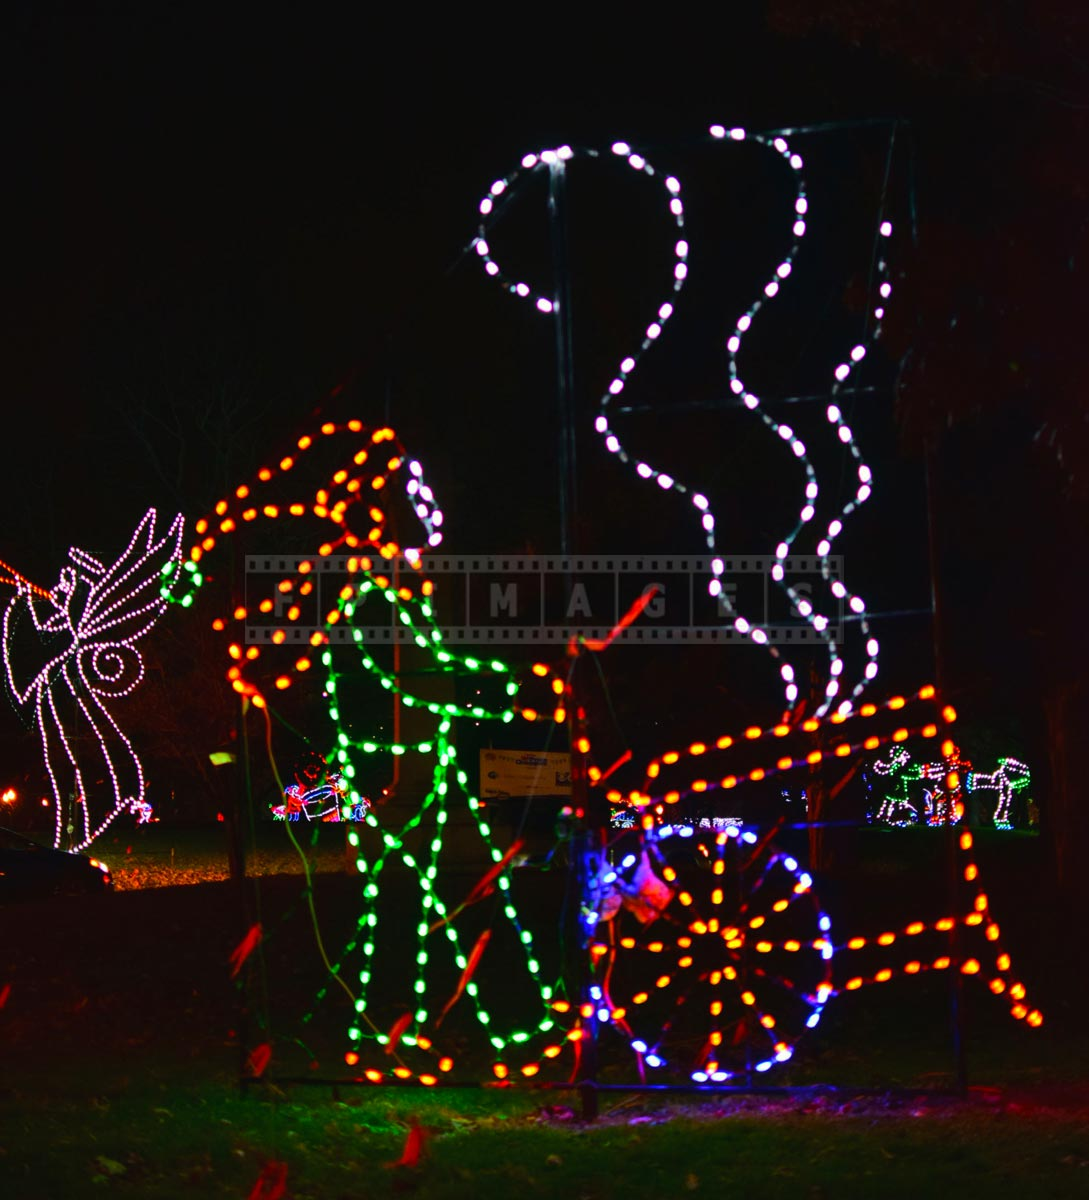 Christmas lights decorations - Fairy tales characters